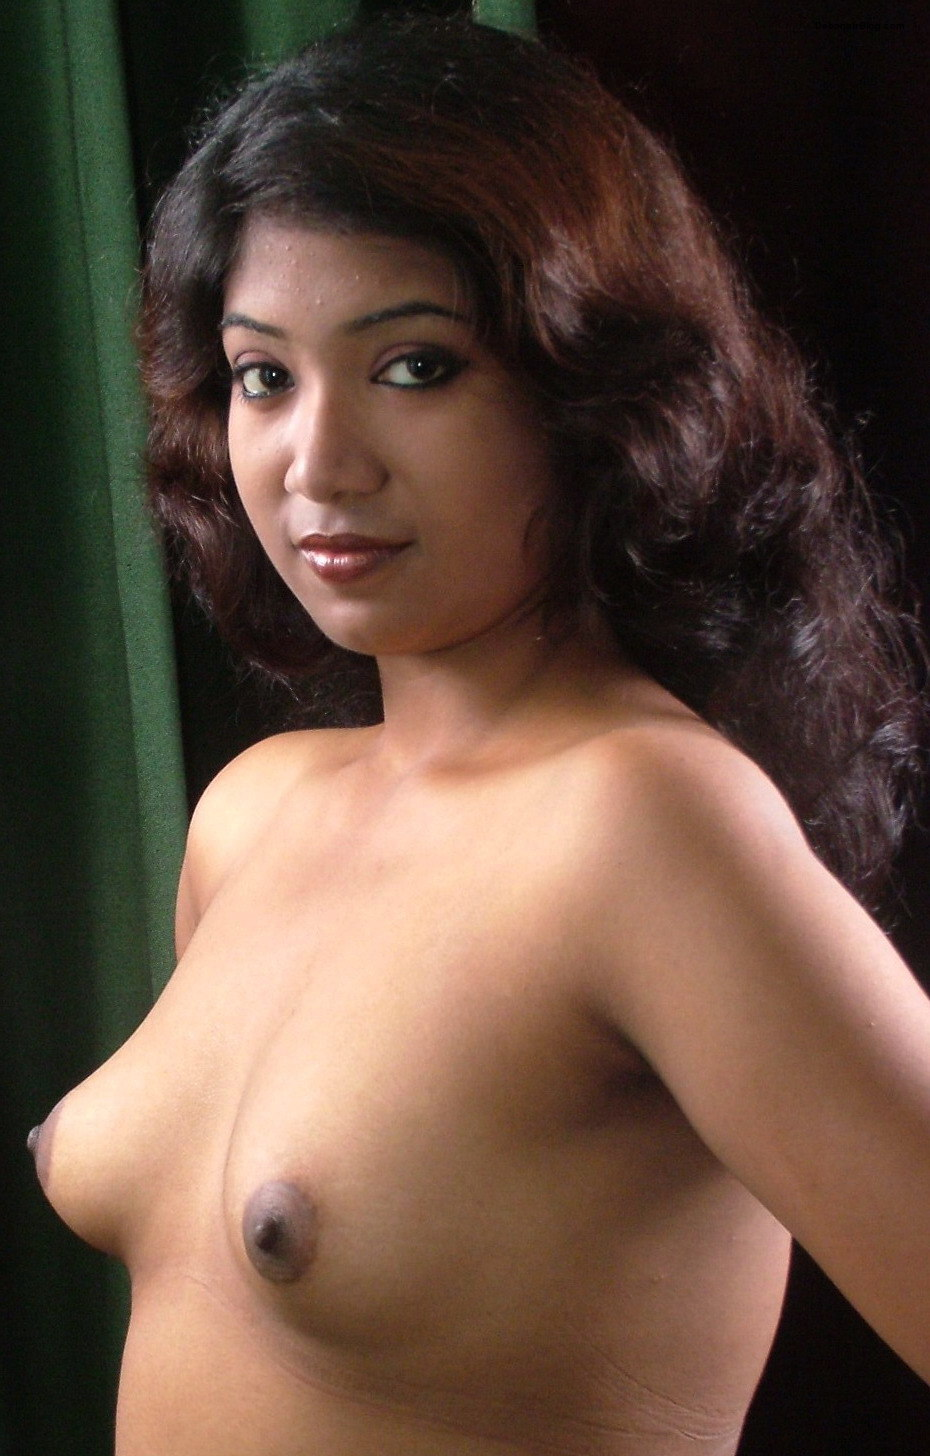 Mallu hairy naked girls — img 9